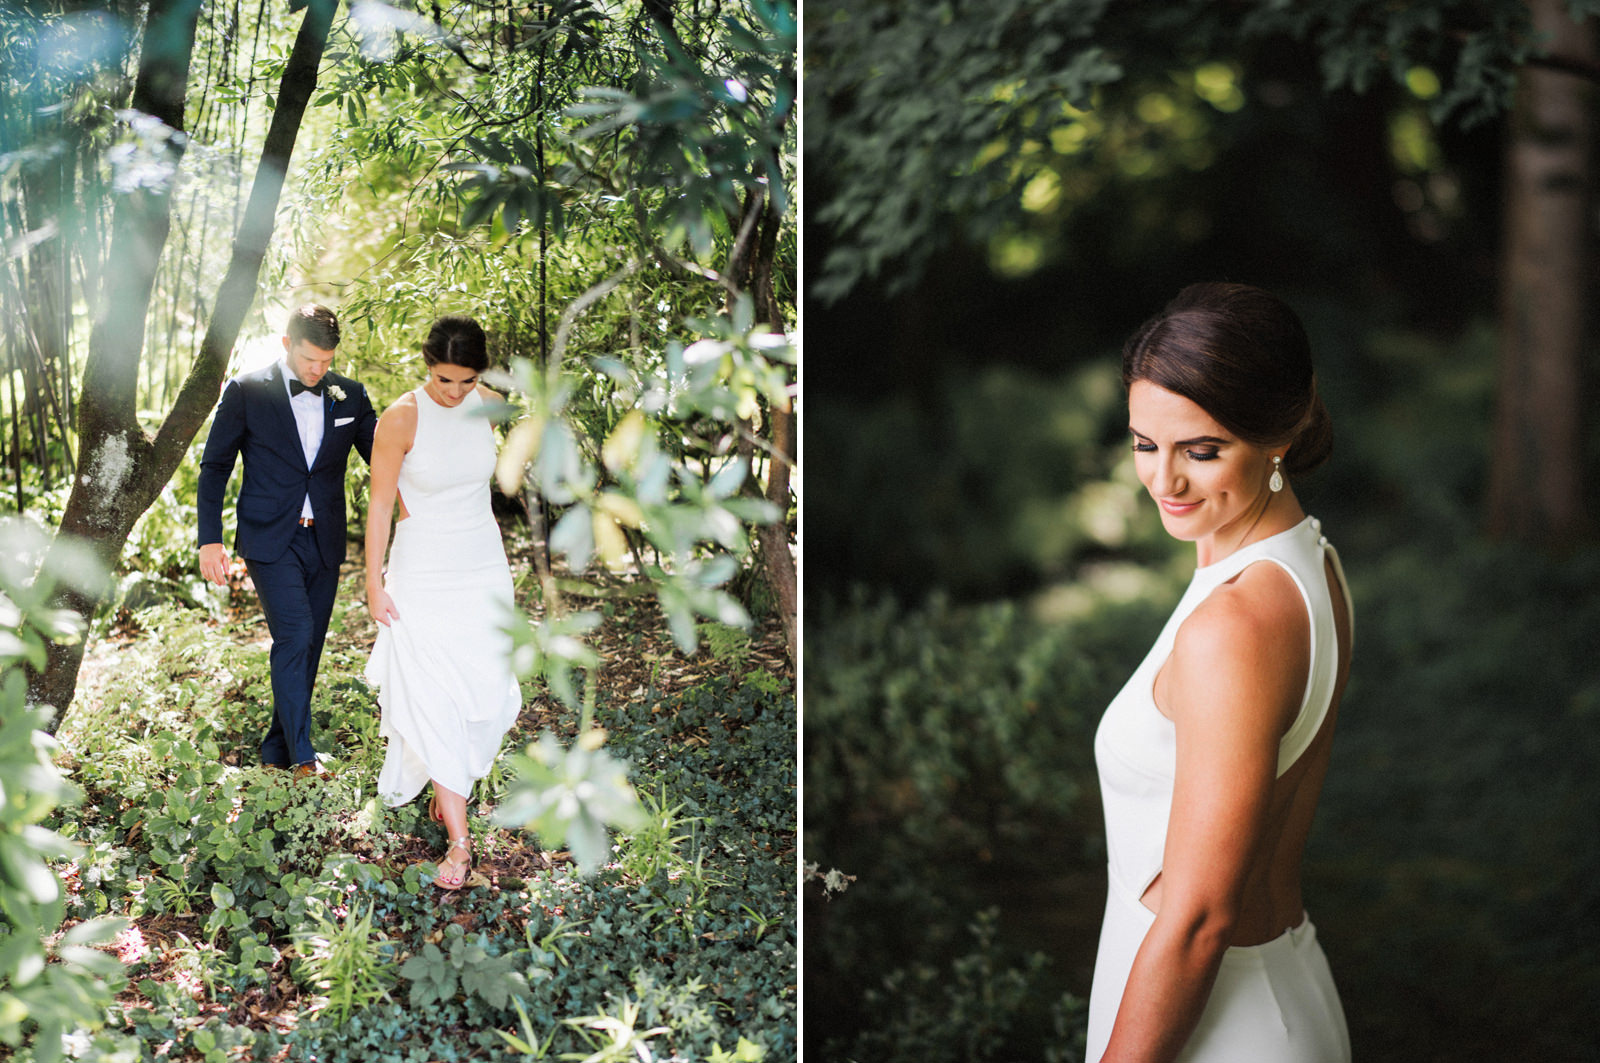 034-organic-stylish-wedding-photos-with-sarah-seven-gown-at-lakewold-gardens.jpg